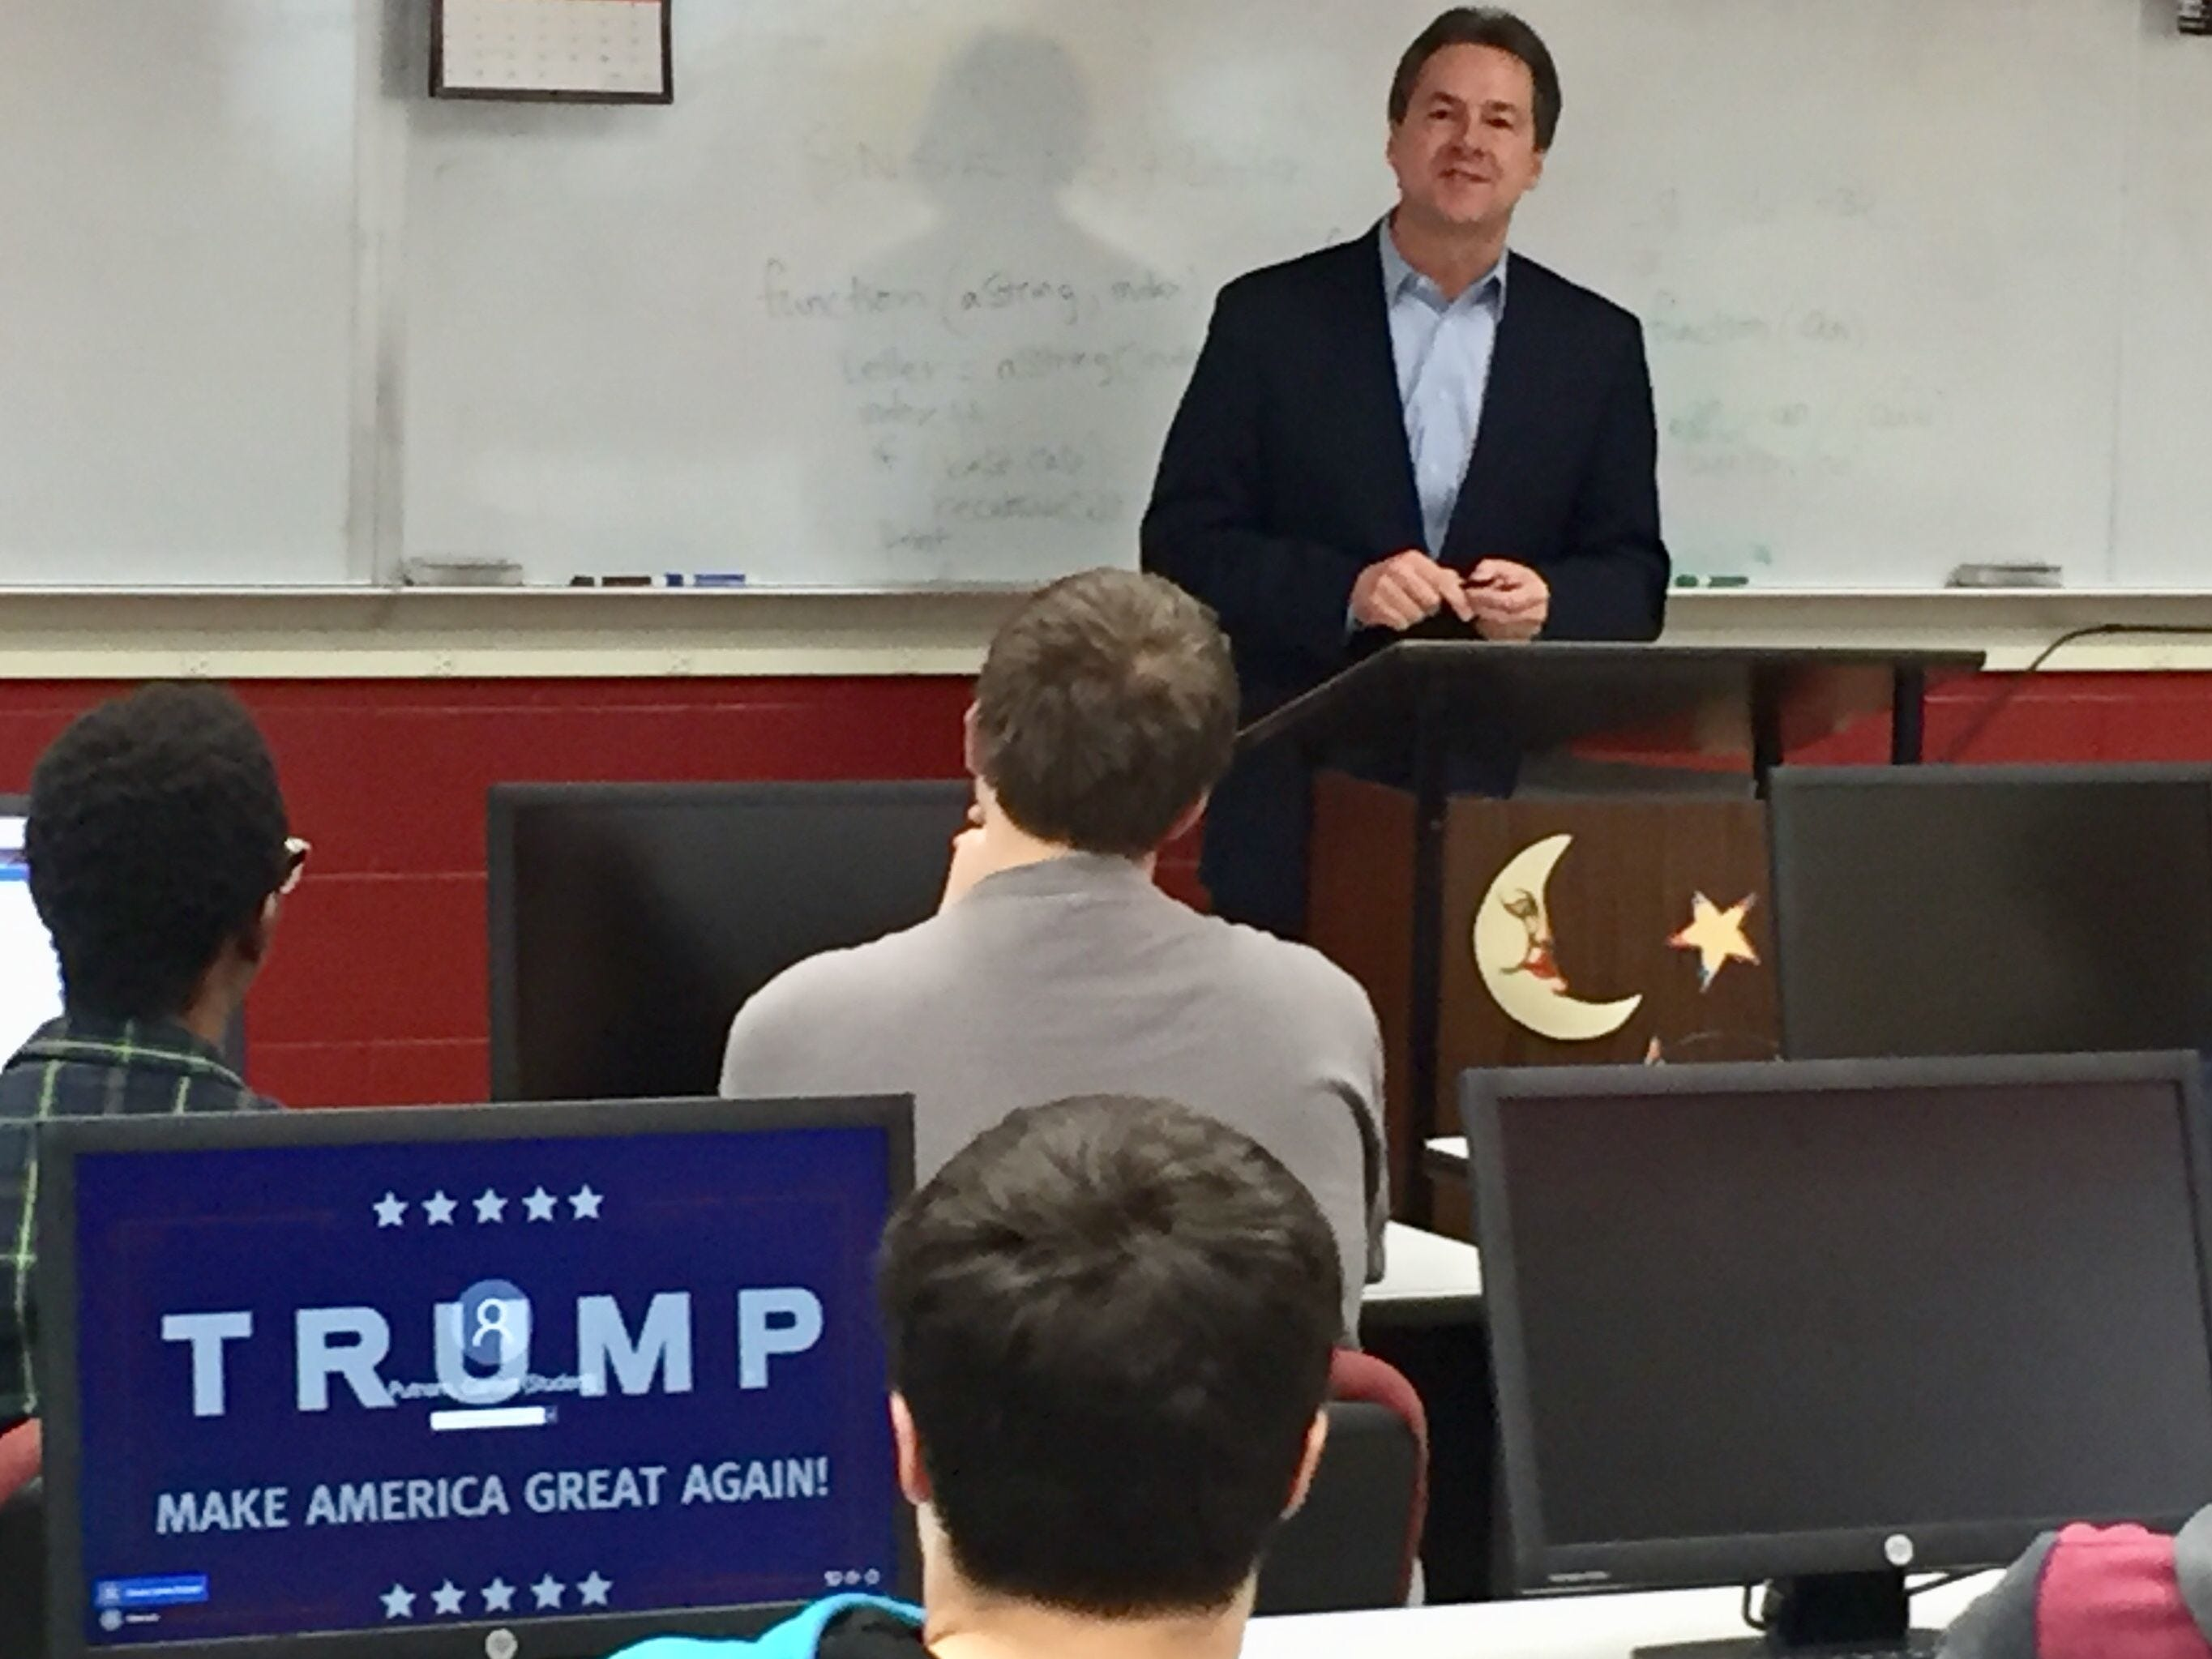 Democratic Gov. Steve Bullock announces internet neutrality policy Monday at Helena High. State contractors will be required to abide by principles of an open internet.  Tribune photo/Phil Drake Democratic Gov. Steve Bullock announces internet neutrality policy Monday at Helena High. (Student at desk says Trump screensaver not his)..